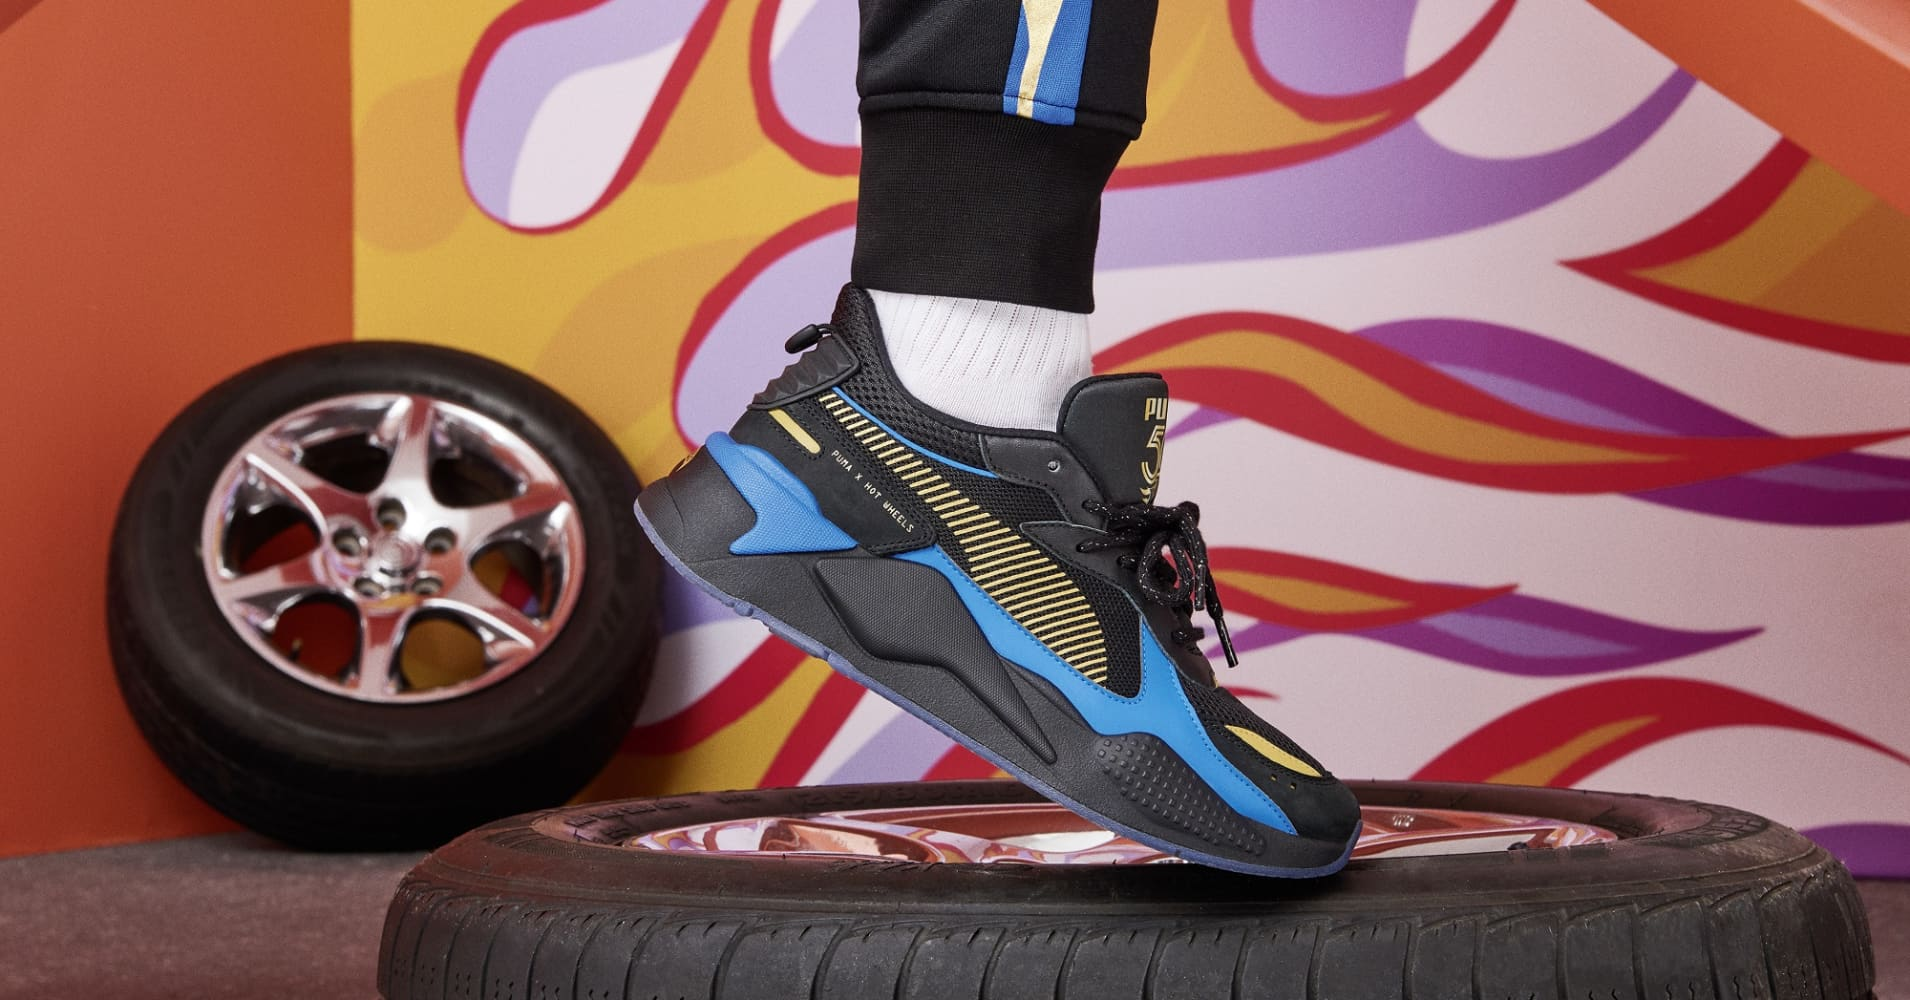 596f521003b066 Photos  Hot Wheels debuts custom sneakers with Puma